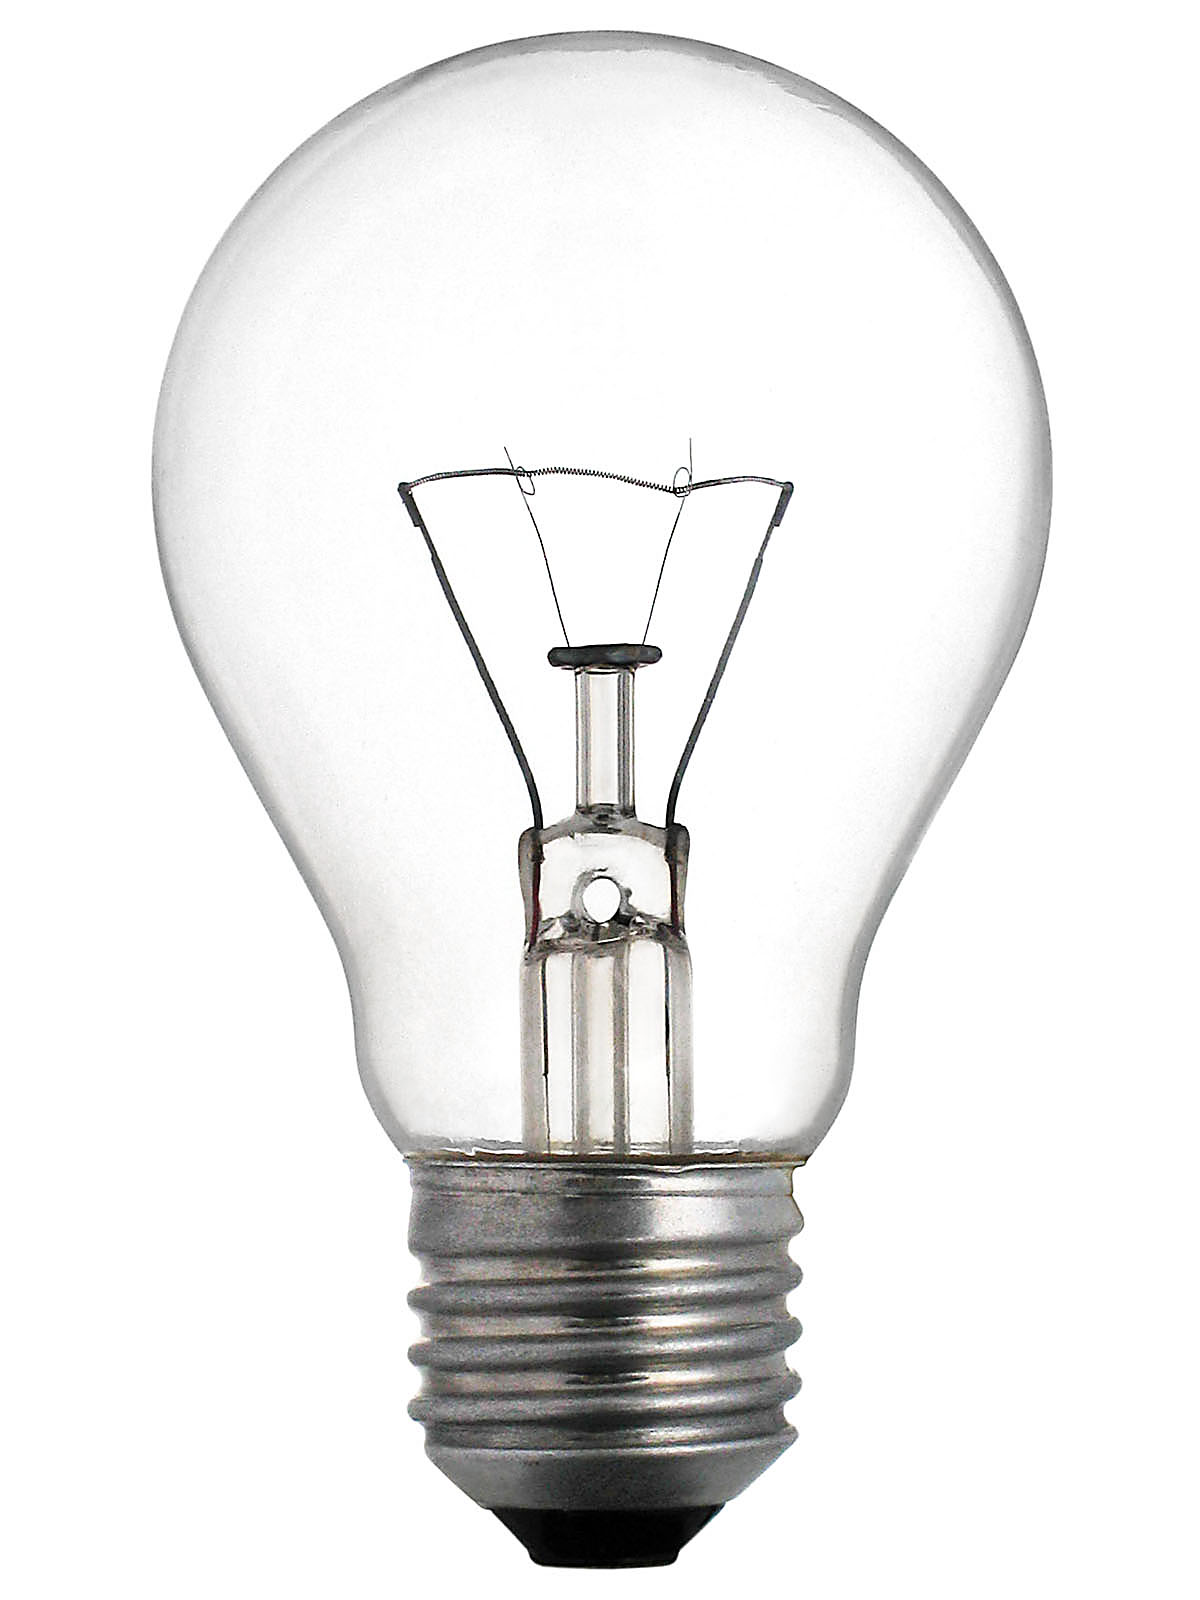 highschool physics: incandescent lamp-series and parallel ...